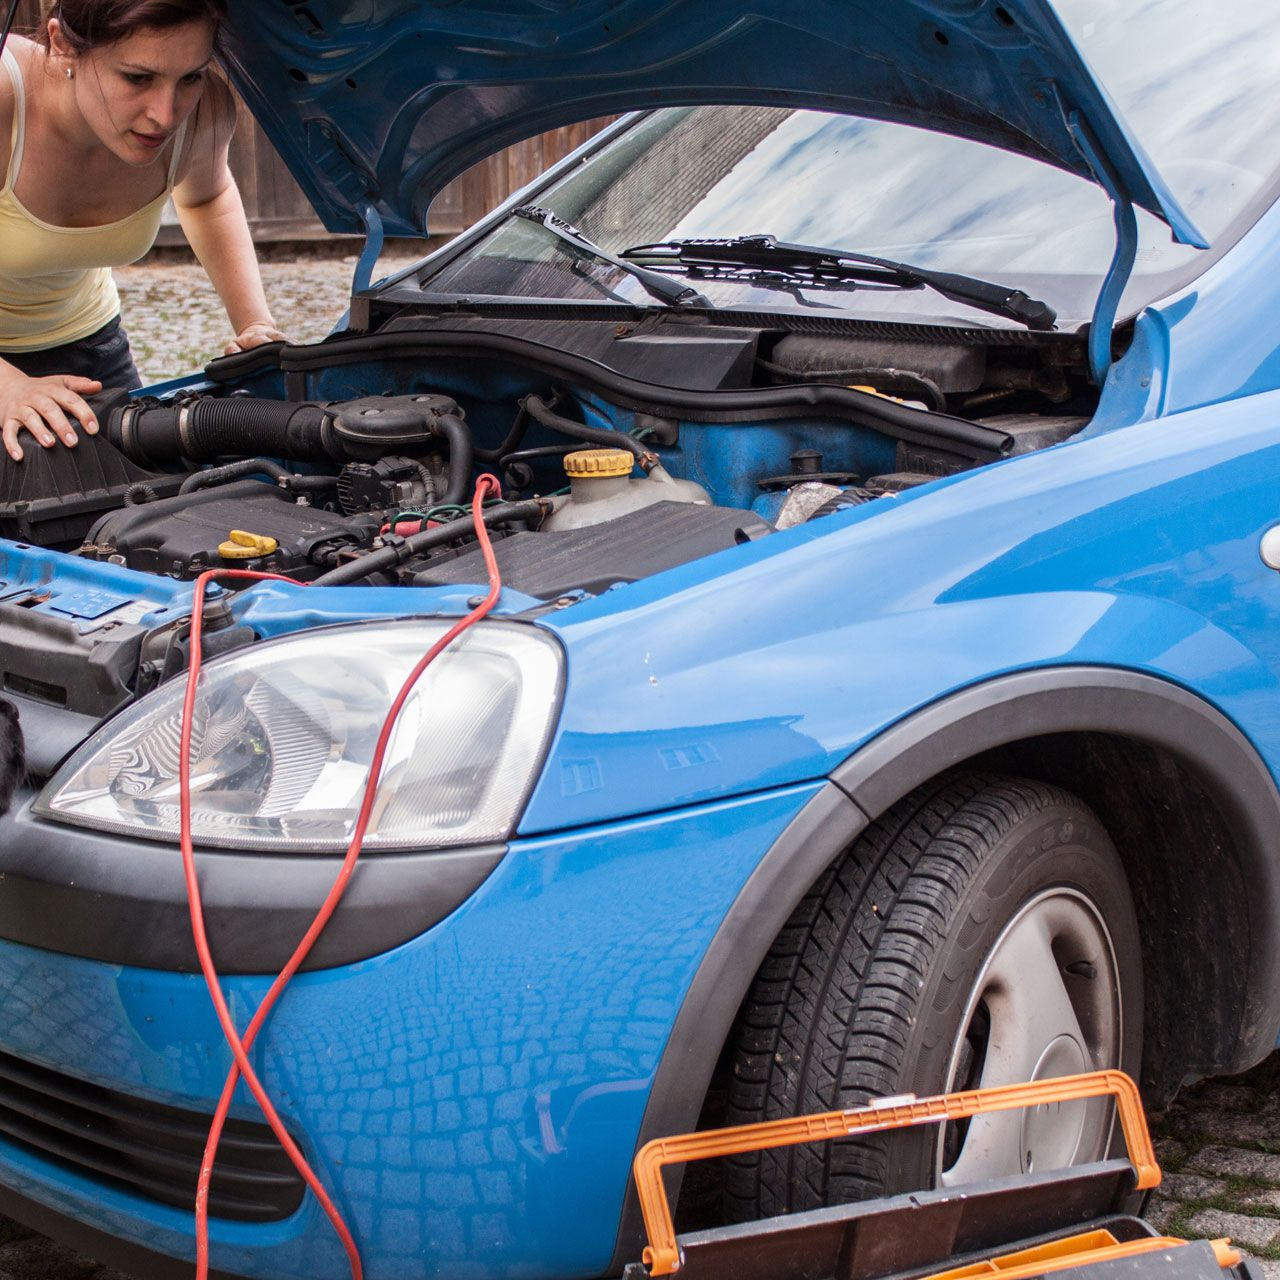 <p>You could pay for a pricey mechanic, or you could take 30 minutes to open up your hood, and see for yourself why your sedan is making that weird chugging noise. A 150-pound woman who gets down and dirty for half an hour burns 102 calories, and saves a pretty penny.</p>